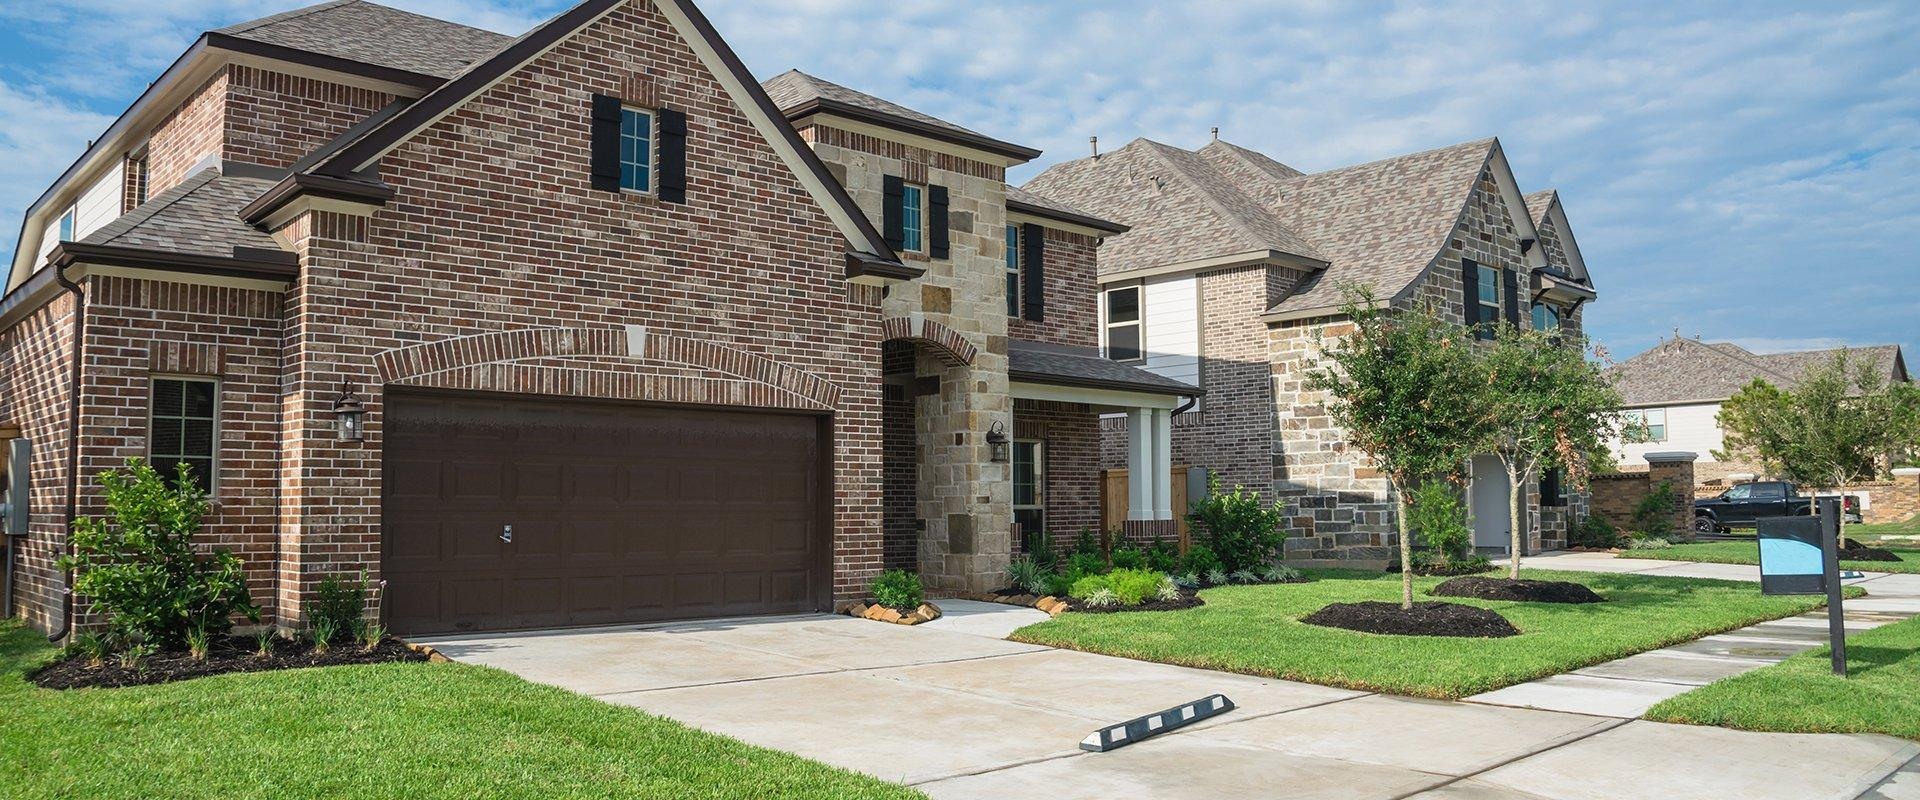 the exterior of a home in dallas texas